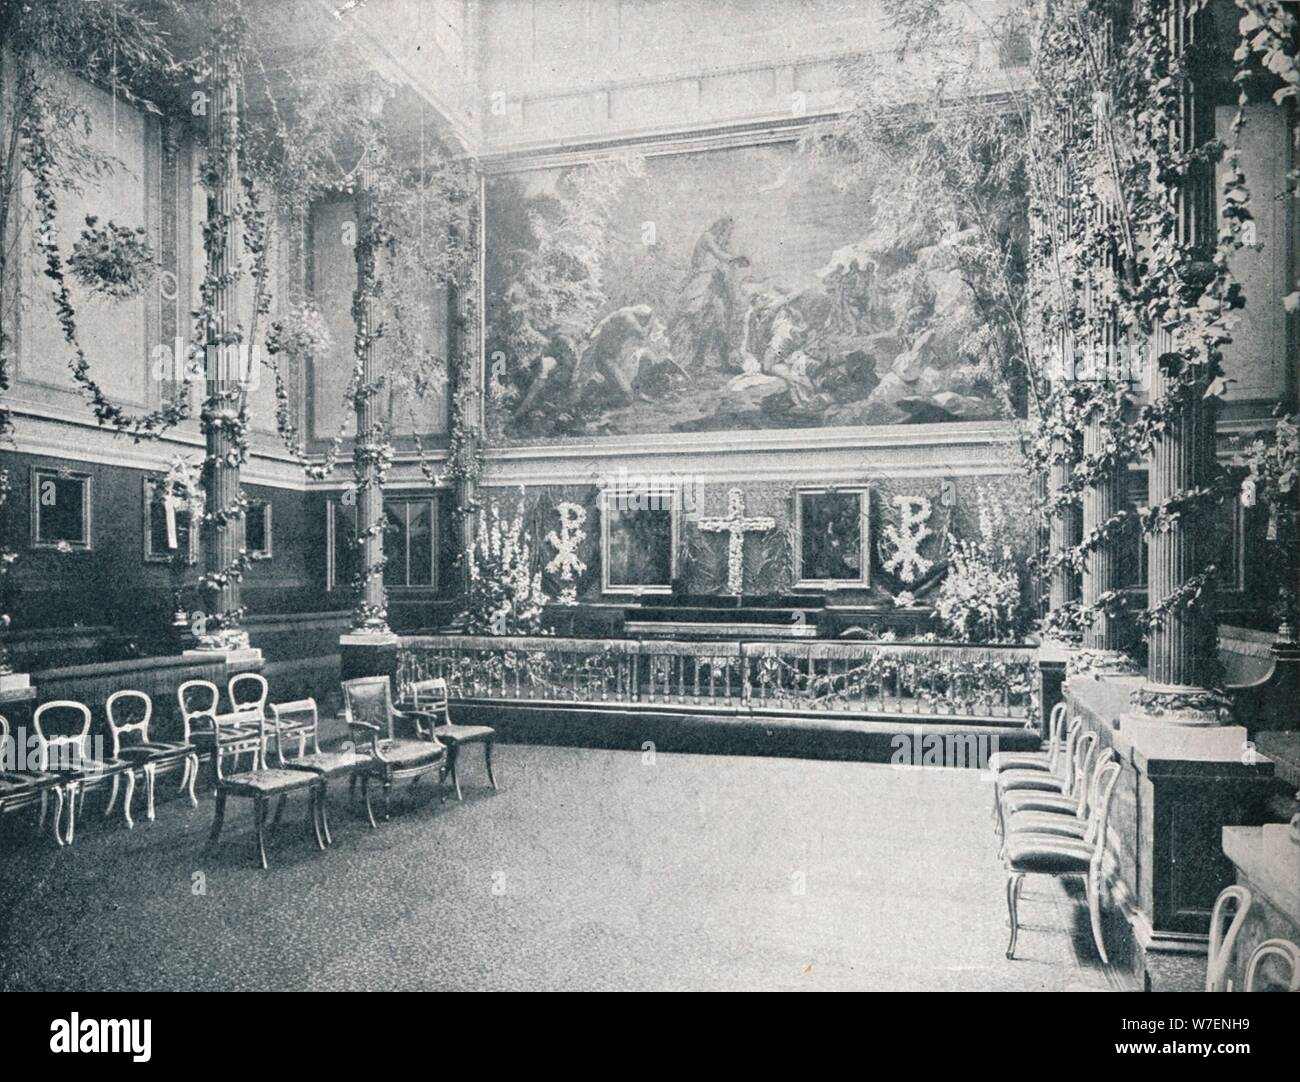 The Private Chapel of Buckingham Palace, c1910 (1911). Artist: HN King. Stock Photo